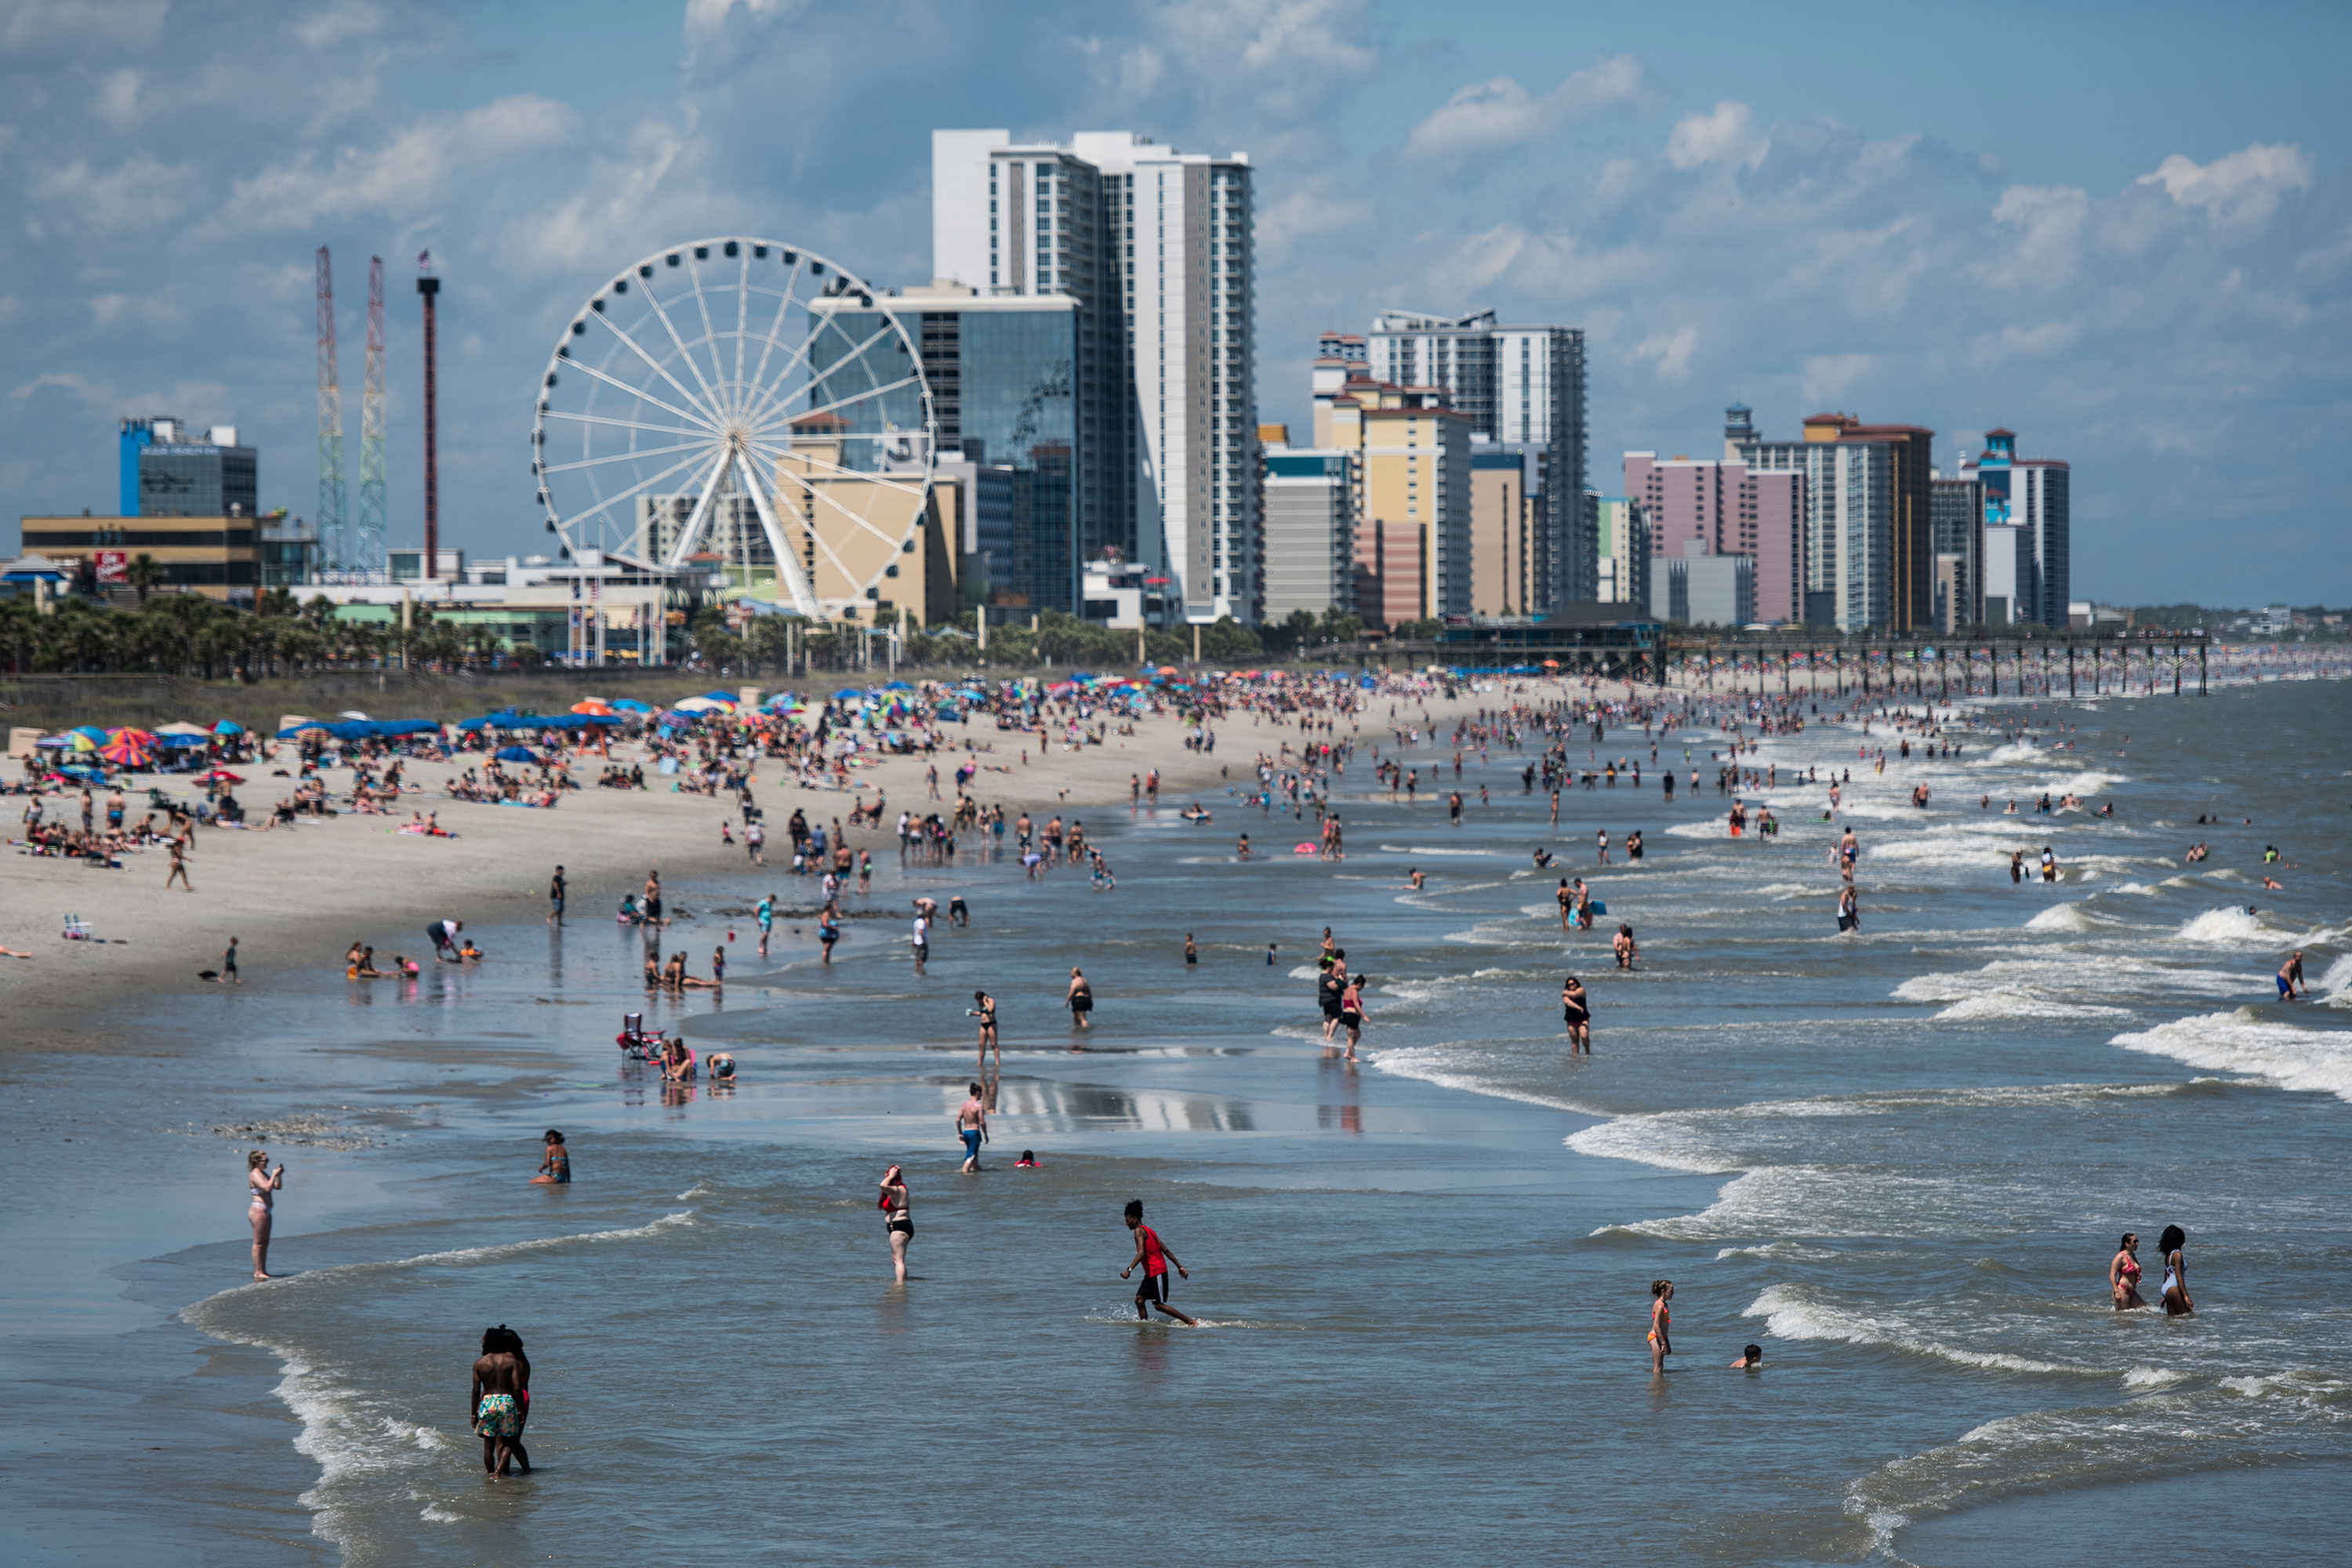 People enjoy the day in Myrtle Beach, South Carolina, on May 23.